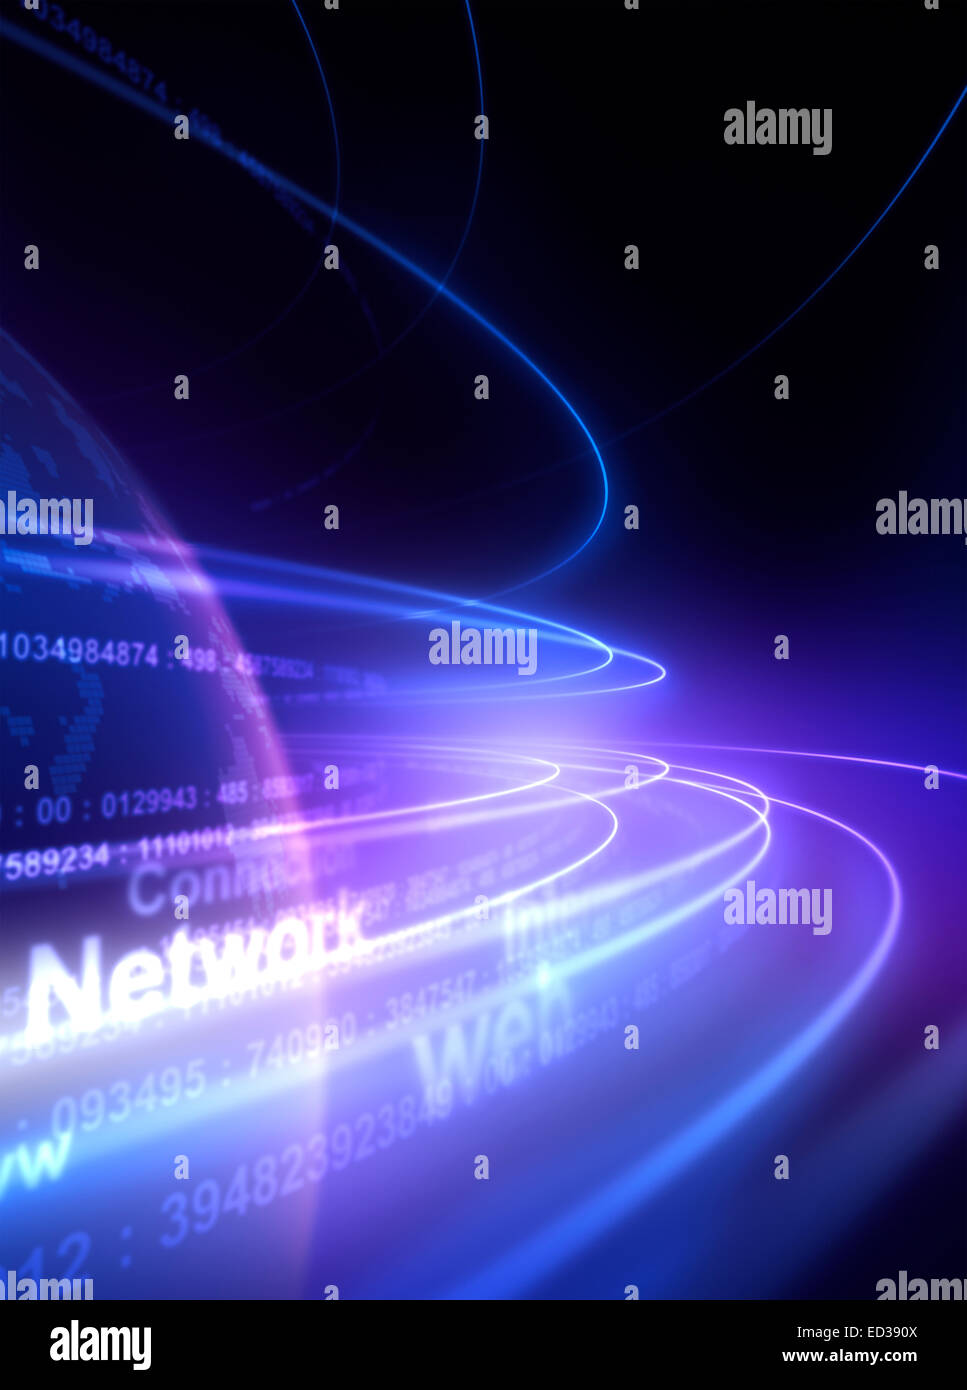 Network lines in the space. - Stock Image